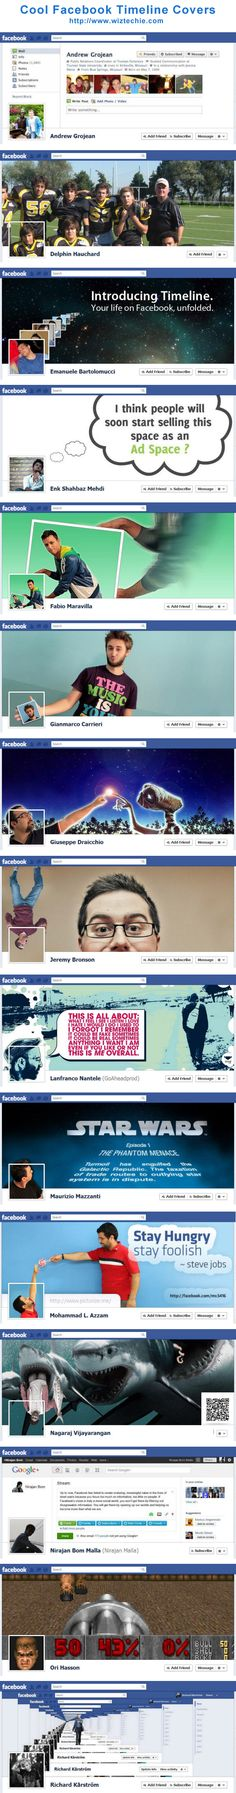 Cool Facebook Timeline Covers + Download FREE Facebook Timeline Template for your Cover Page